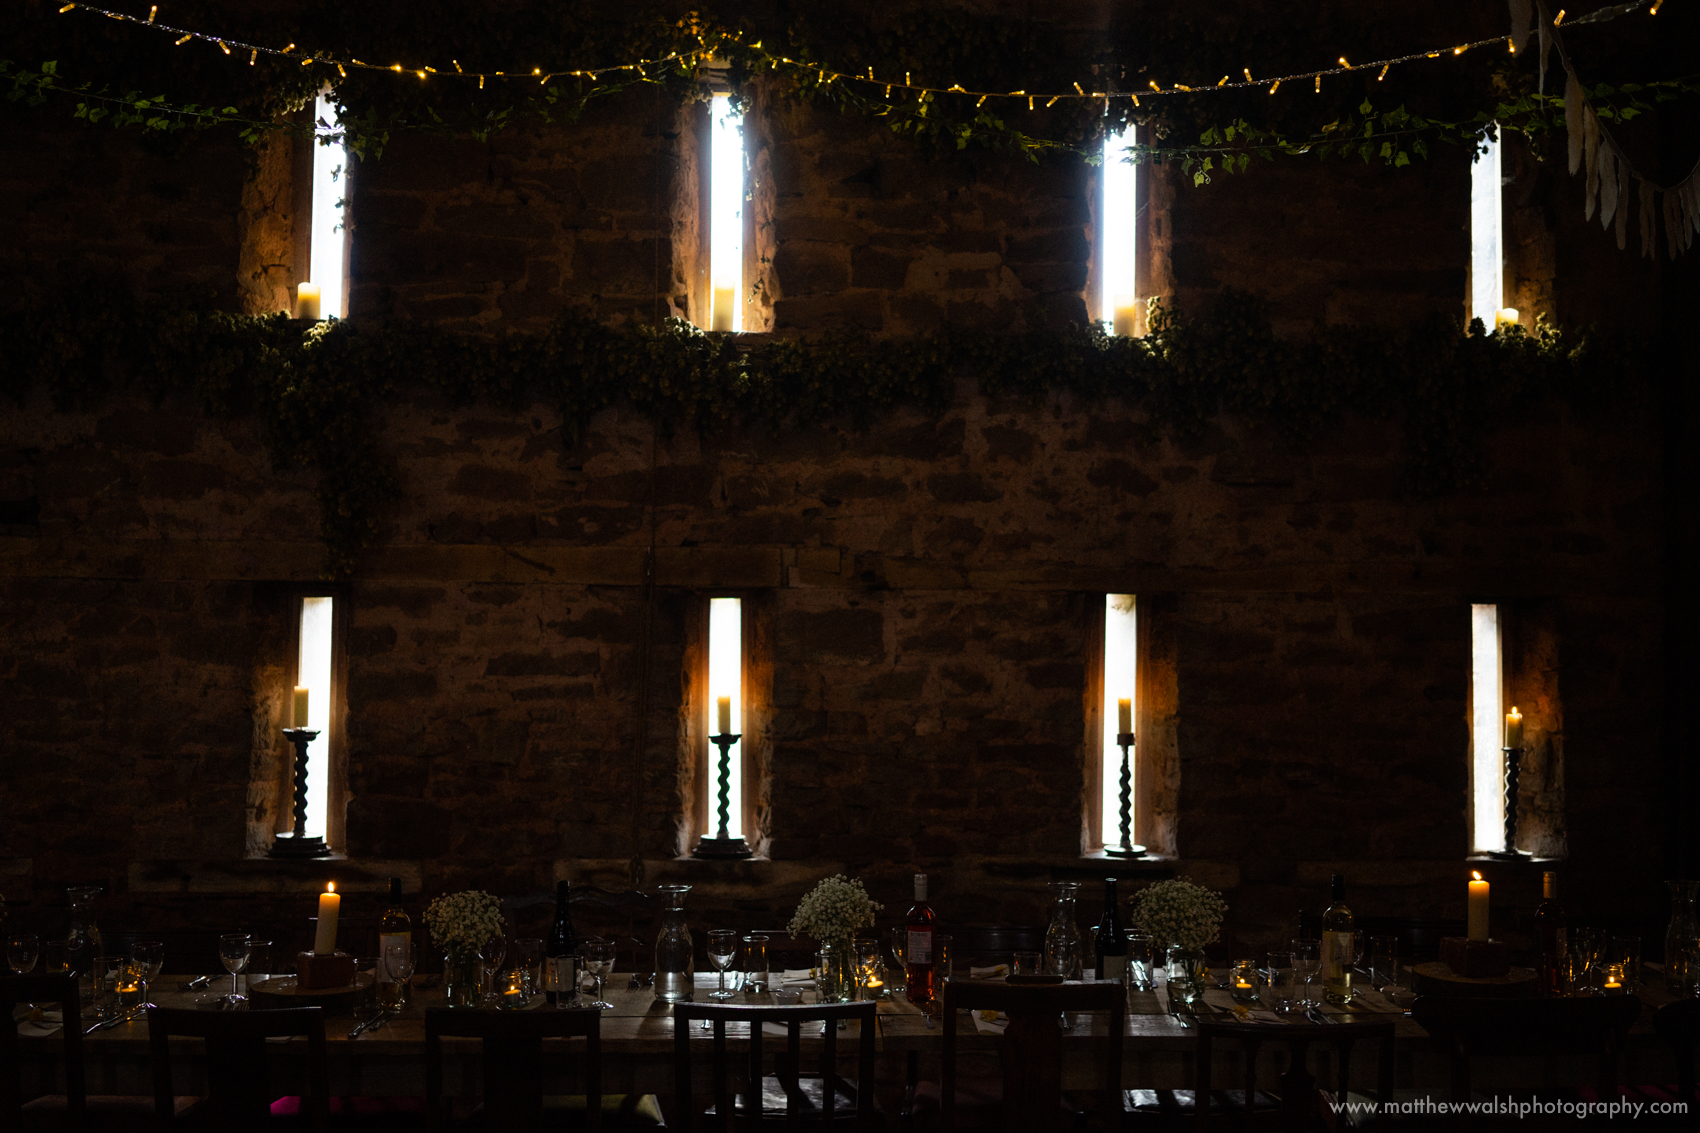 Slits of window light I love these venue details